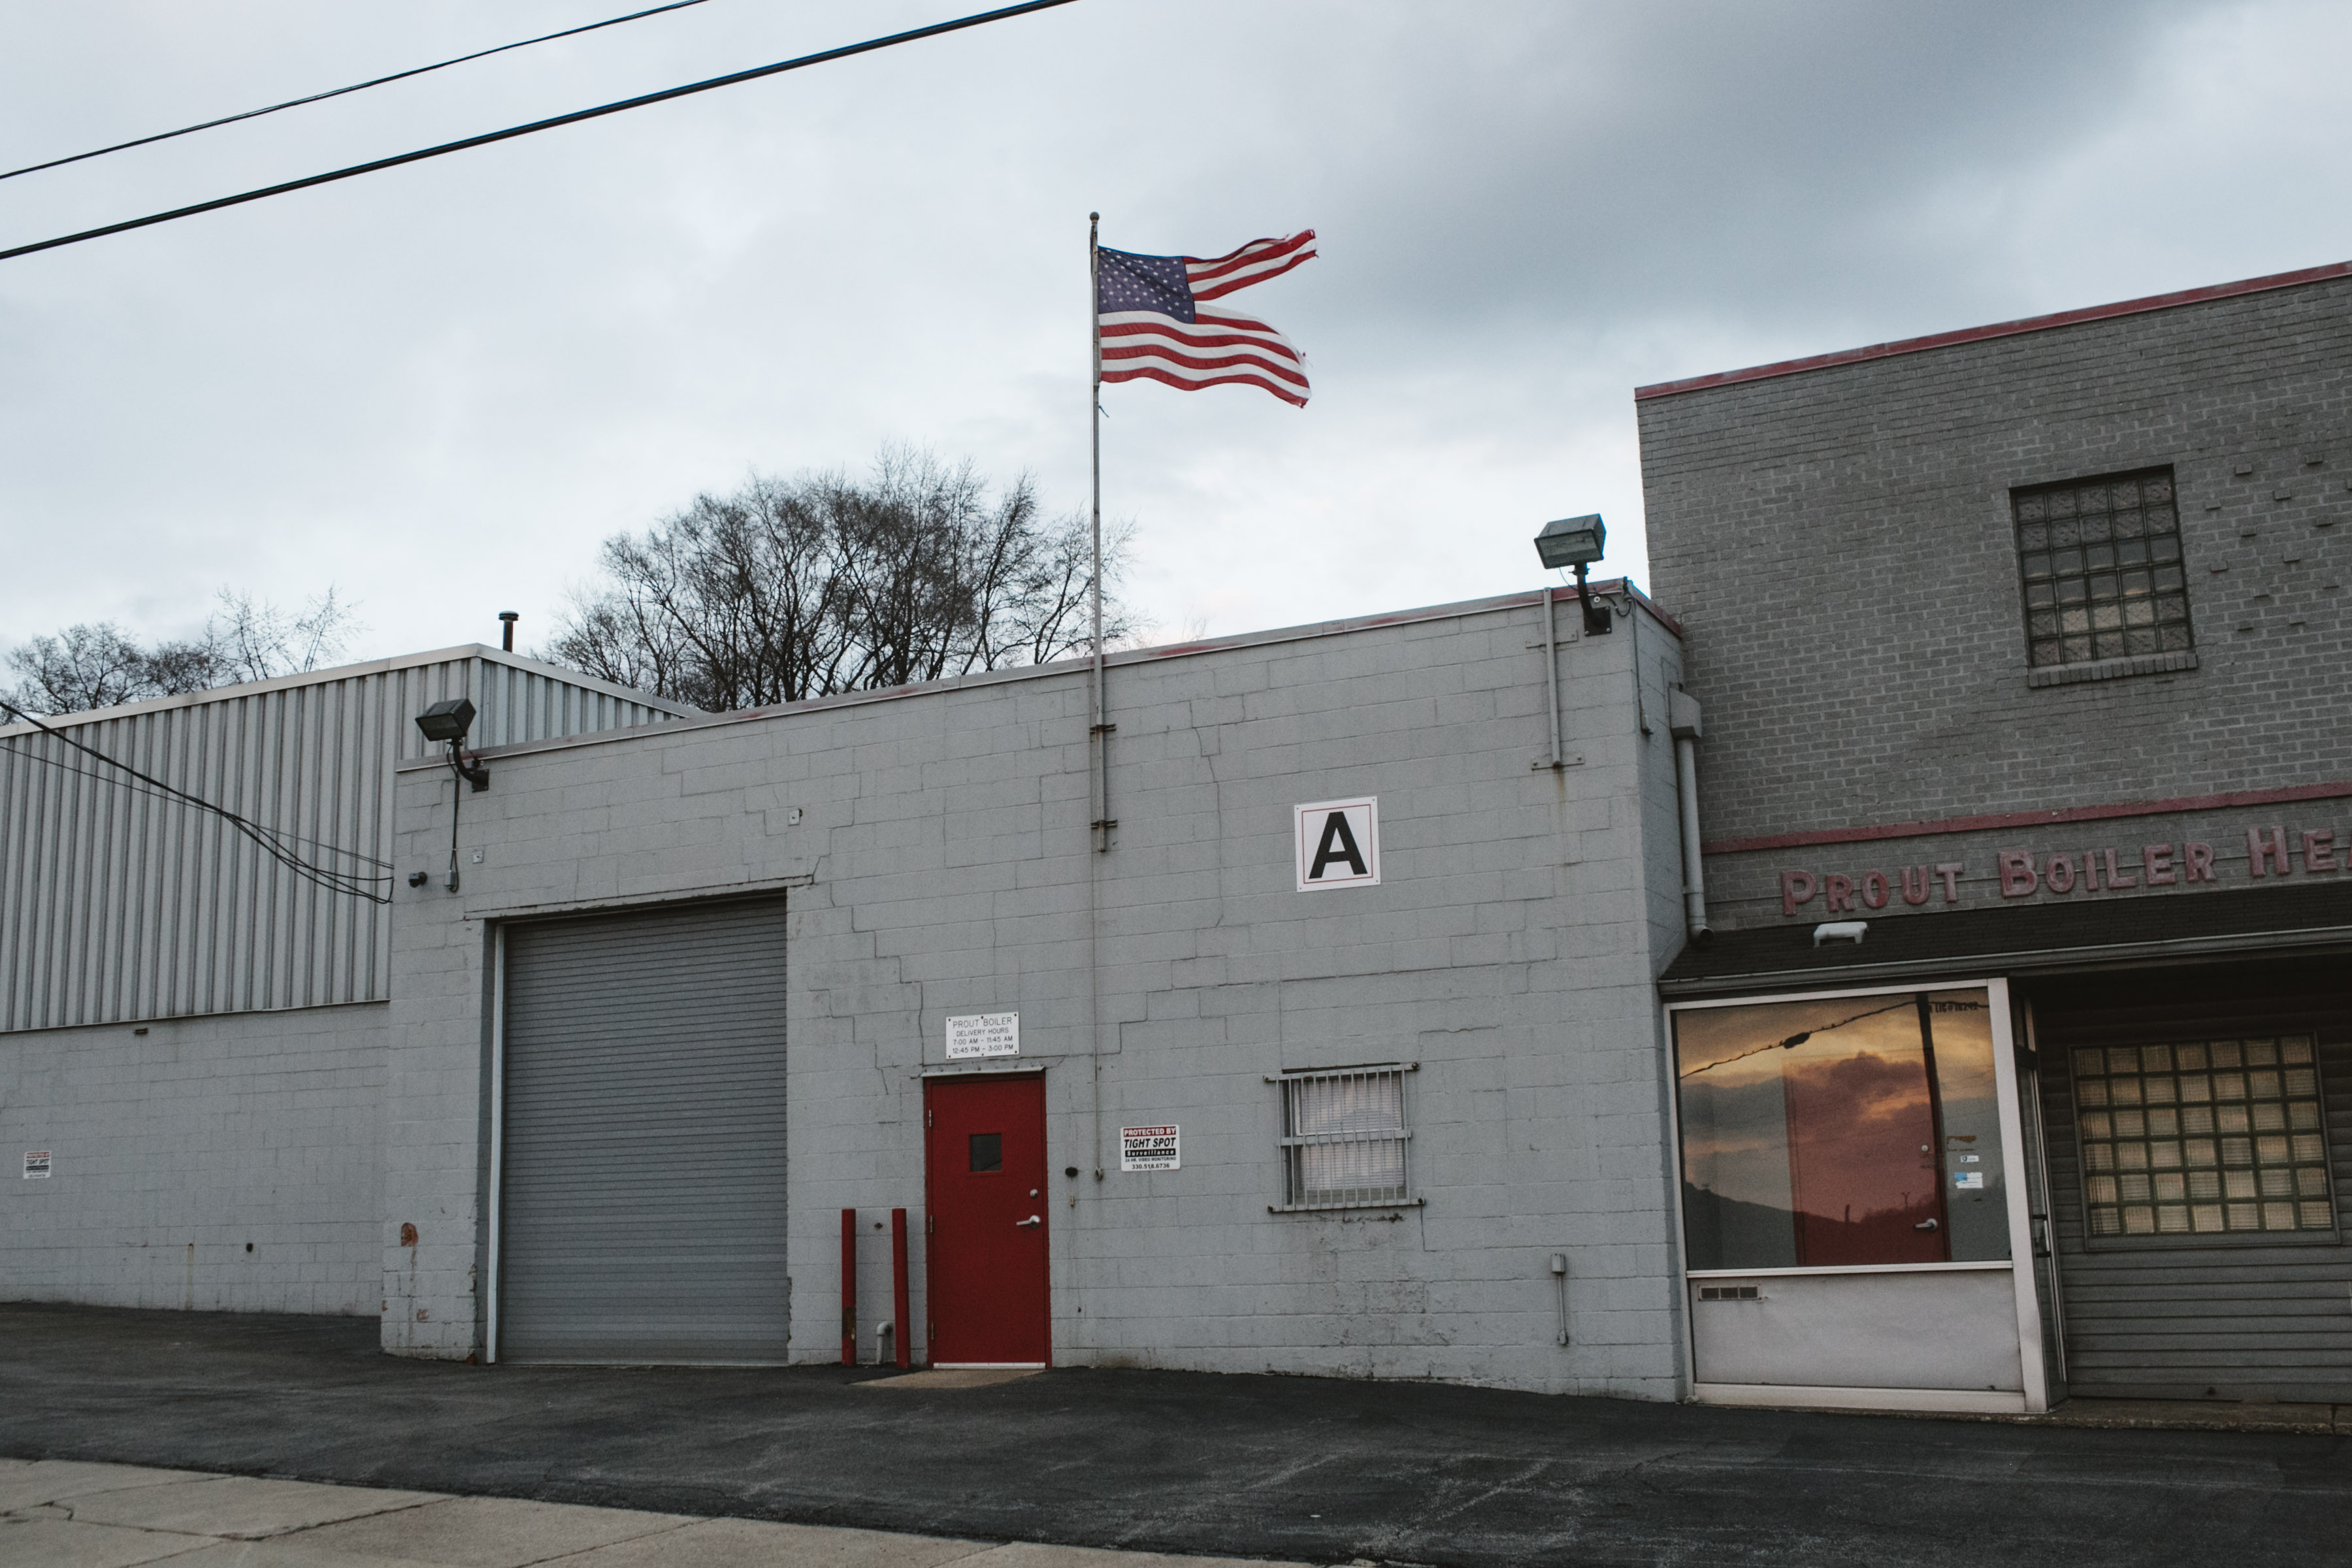 A tattered American flag flies over a heating business in Youngstown, Ohio on March 2, 2017.